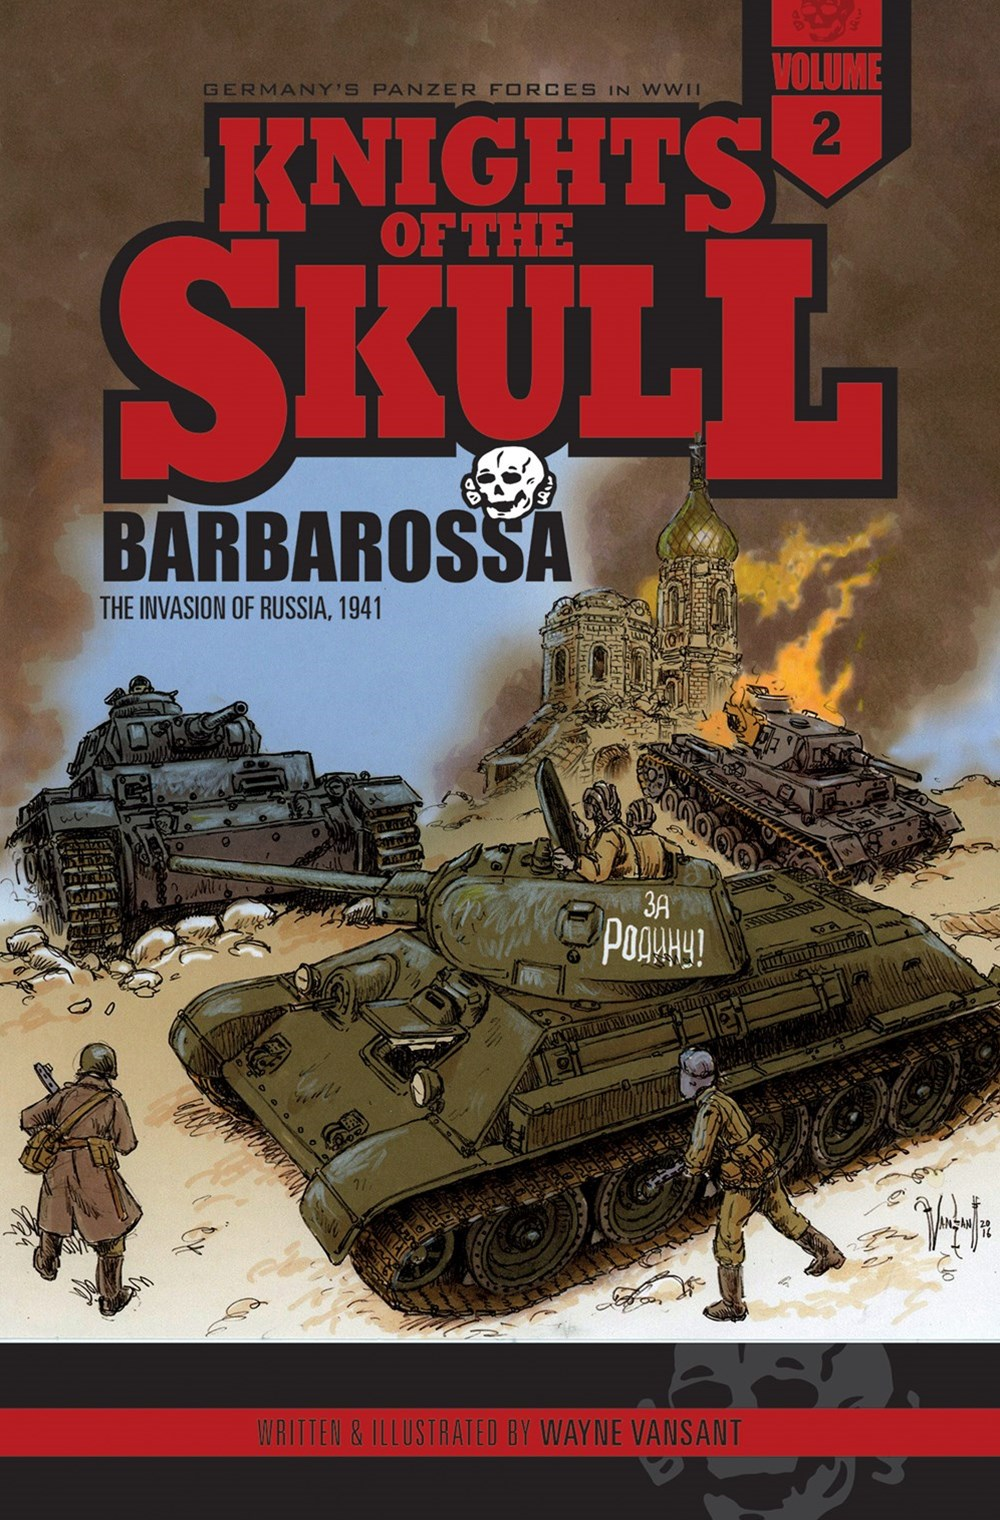 Knights of the Skull, Vol. 2: Germany's Panzer Forces in WWII, Barbarossa